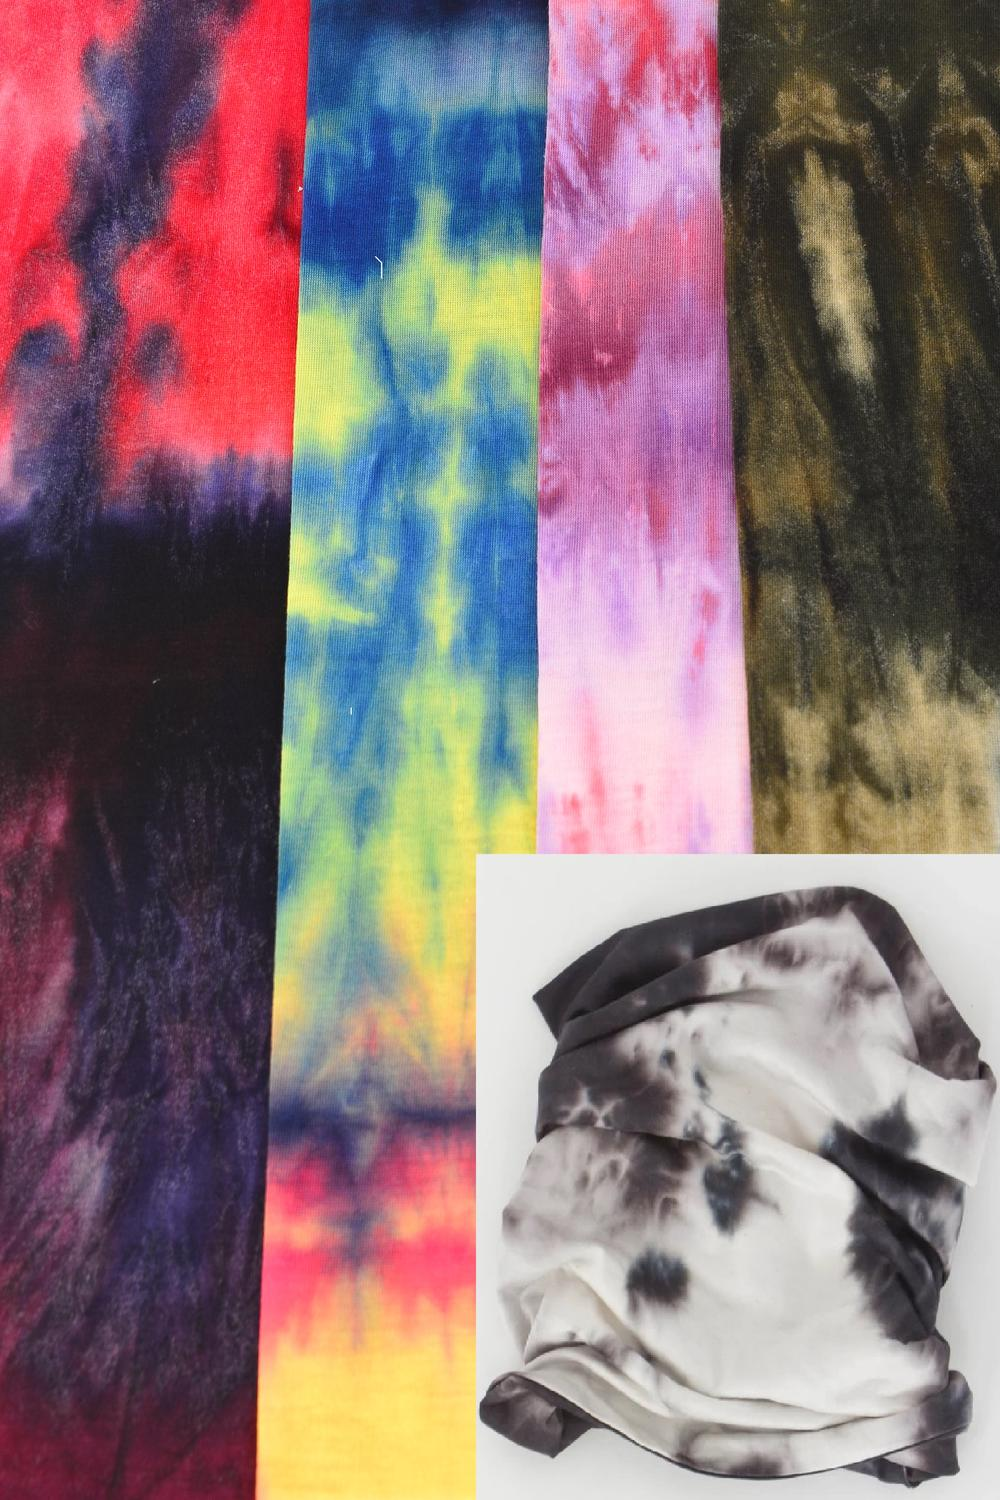 "Multi Functional Scarf Face Mask Gradient Tiedye/DZ **Unisex** Size-20"" x 9 1/2"" Wide,3 of each Pattern Asst,Hang tag & OPP bag & UPC Code"